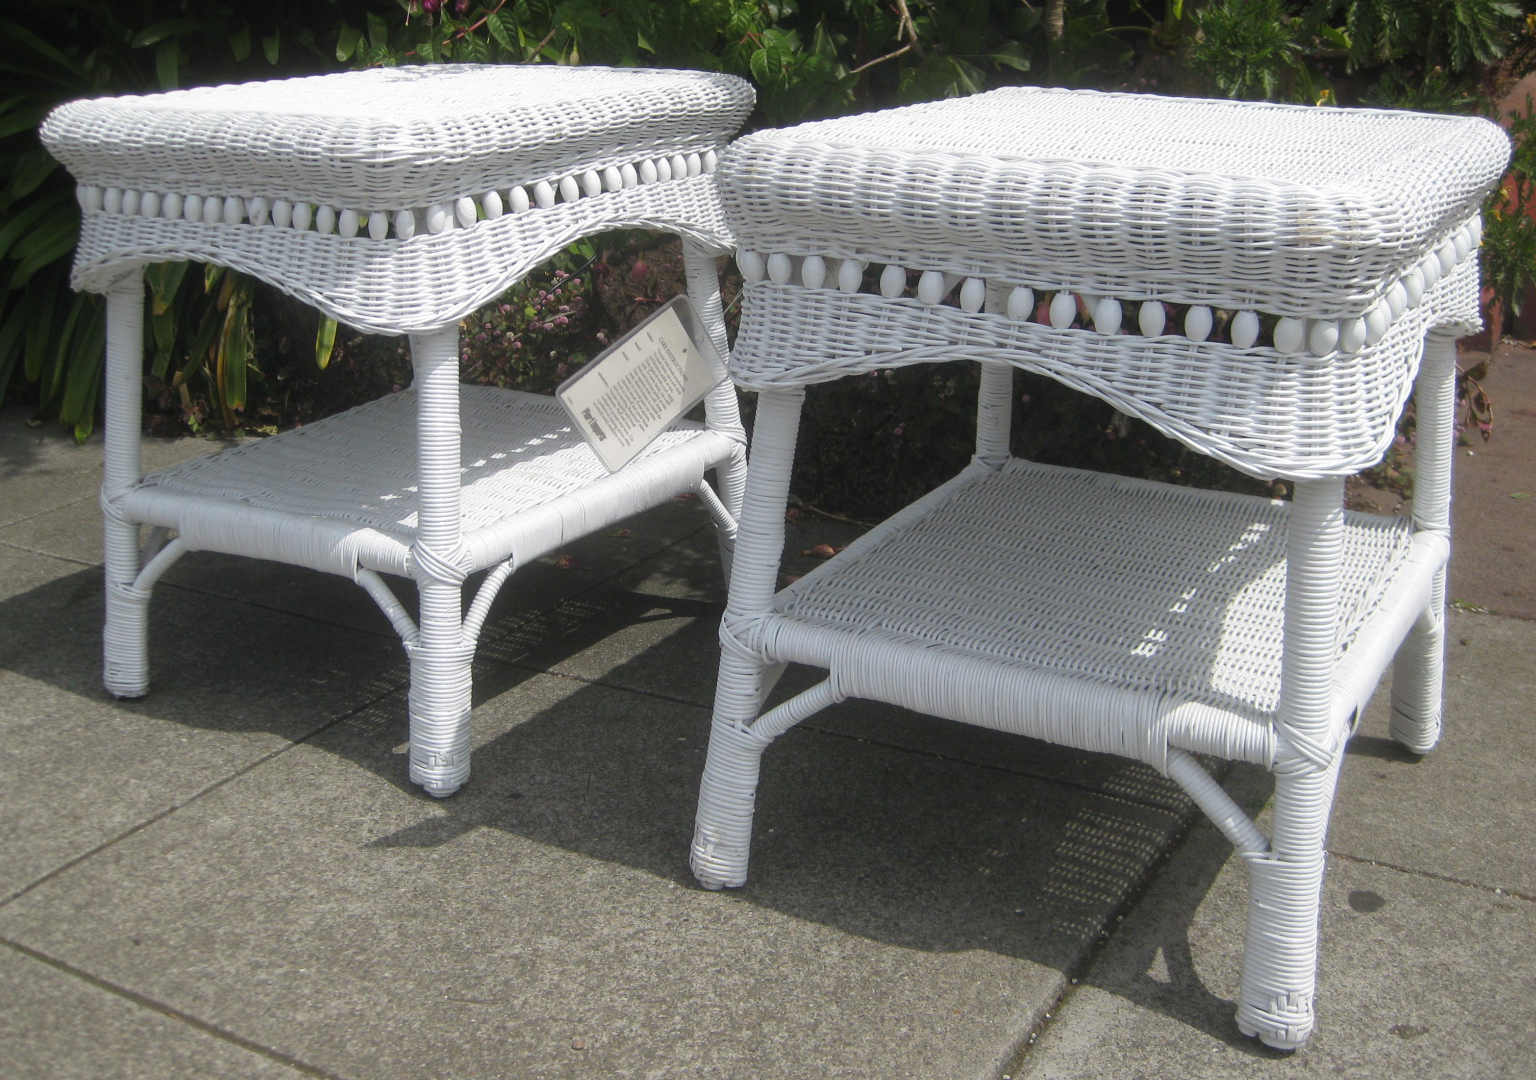 Pier One Wicker Furniture | Pier One Patio Chairs | Pier One Imports Chairs